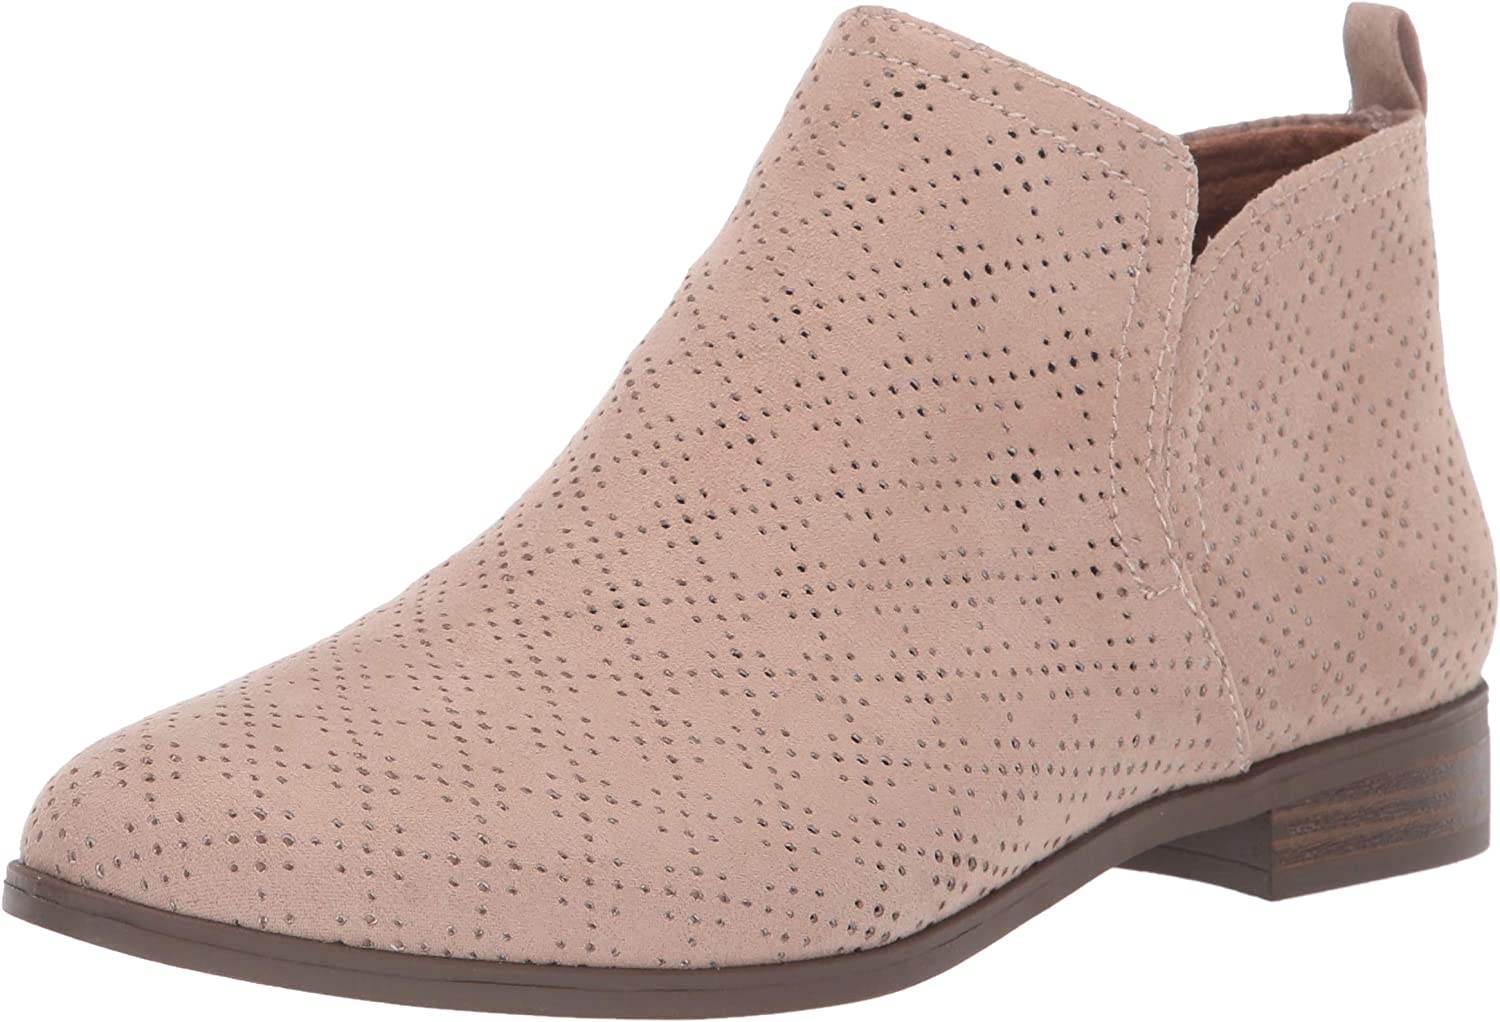 Dr. Scholl's Shoes Shipping included Max 76% OFF Women's Rise Boot Ankle